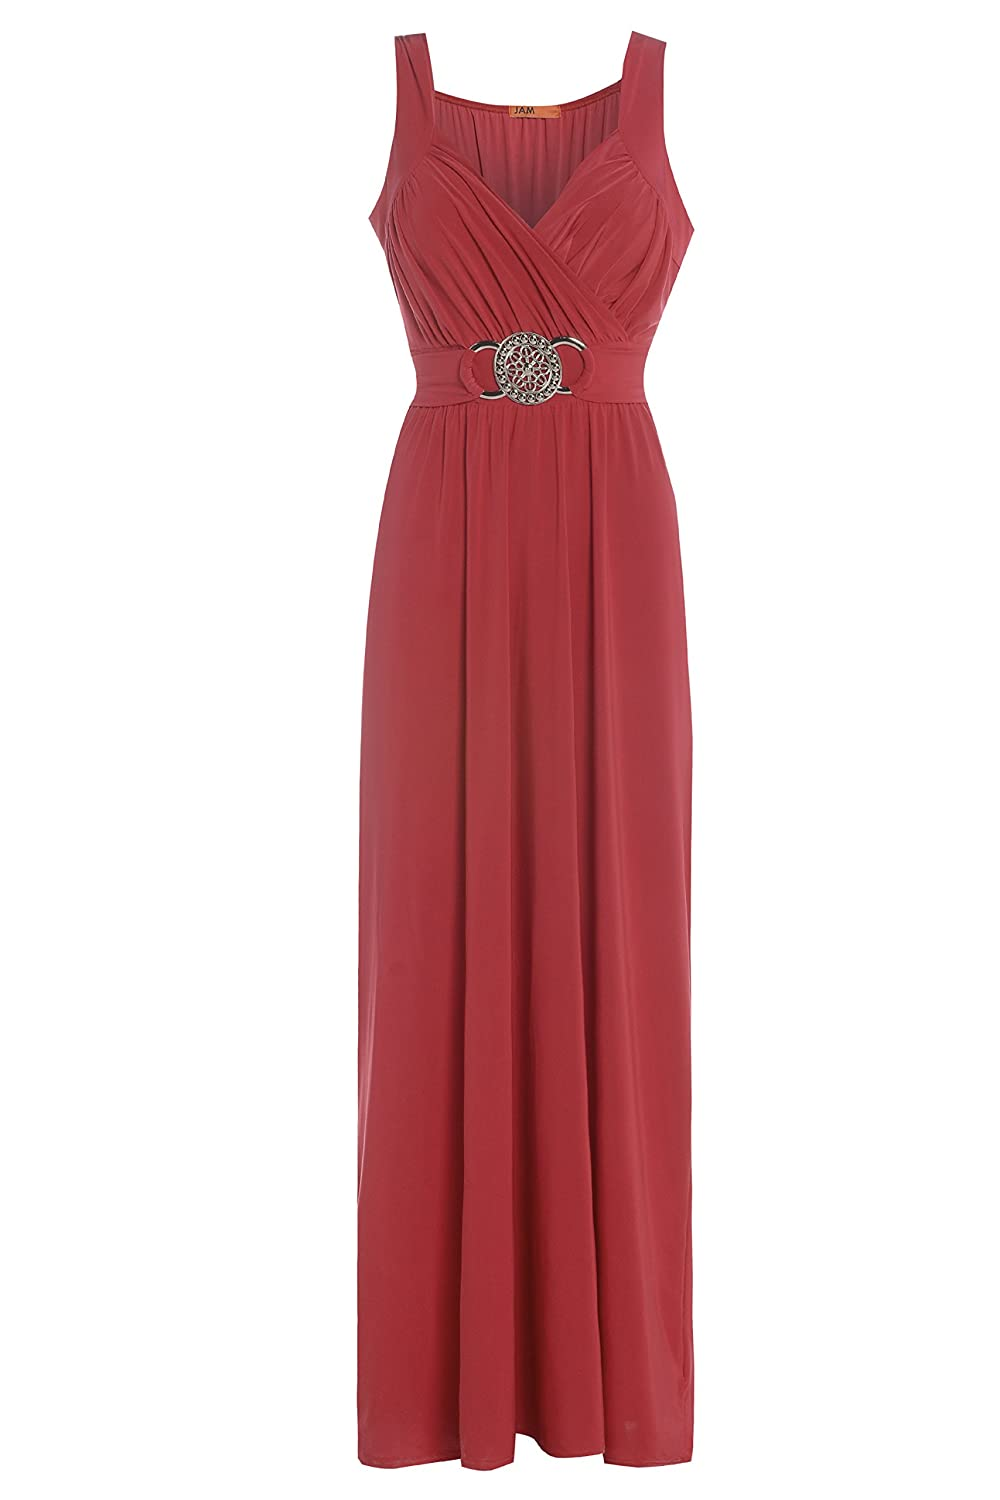 Blush Avenue® Women's Sleeveless Buckle Maxi Evening Dress Glossy Look